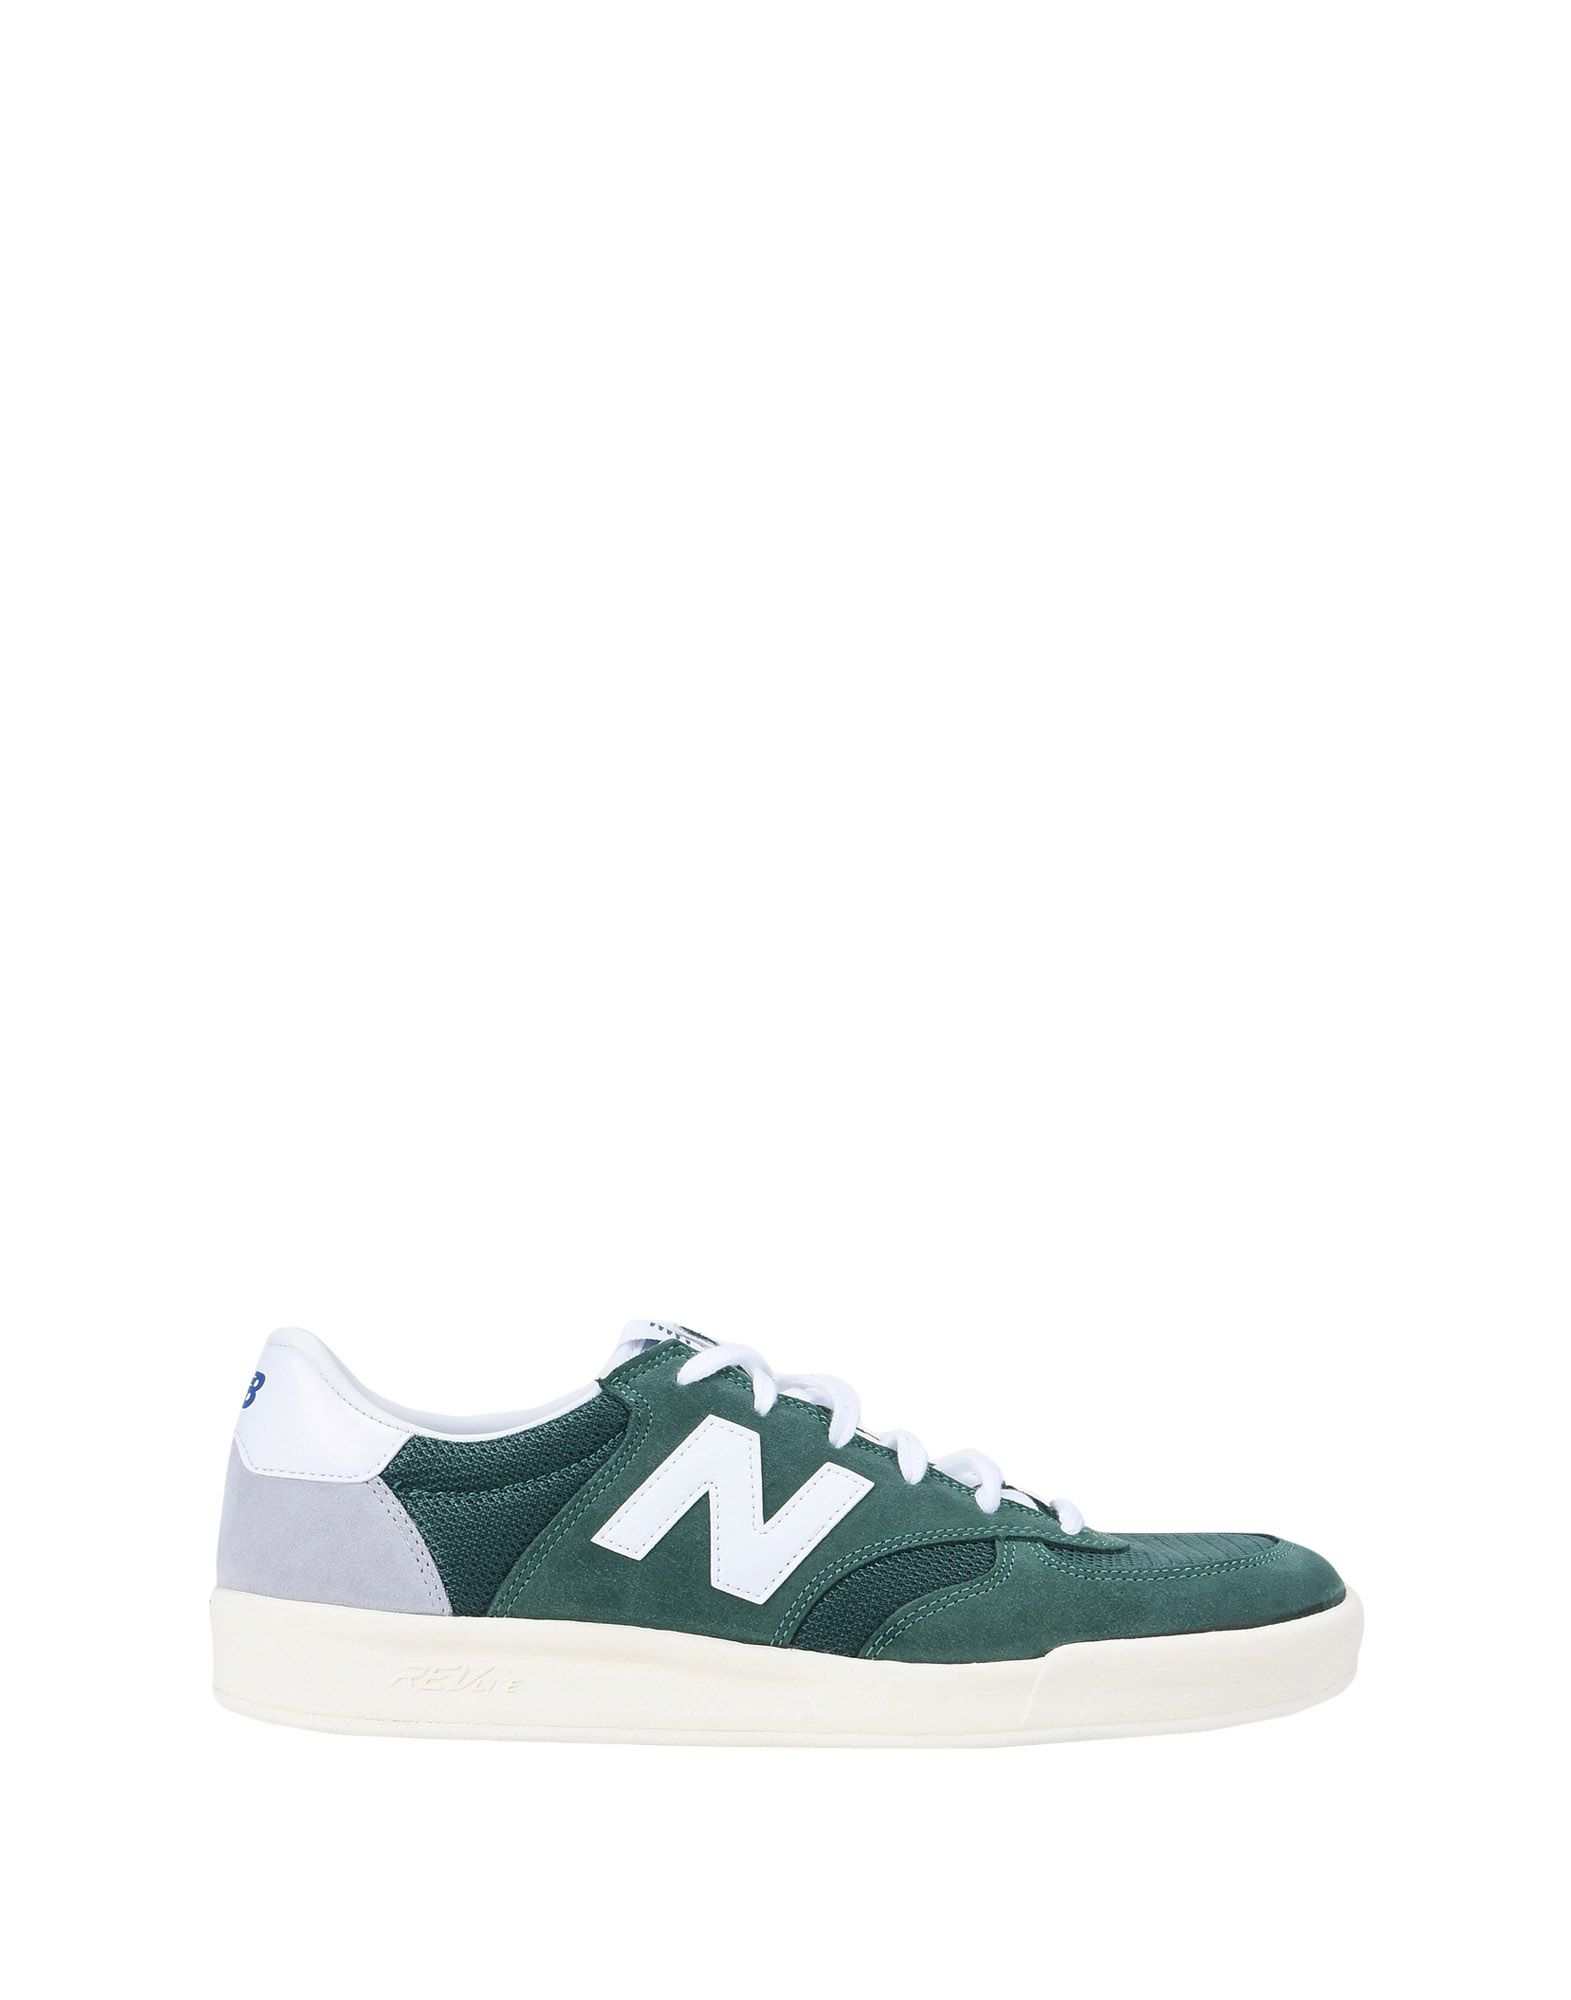 New Balance 300 Vintage Suede Mesh - Sneakers - Men on New Balance Sneakers online on Men  Canada - 11489529MO 6a48b8